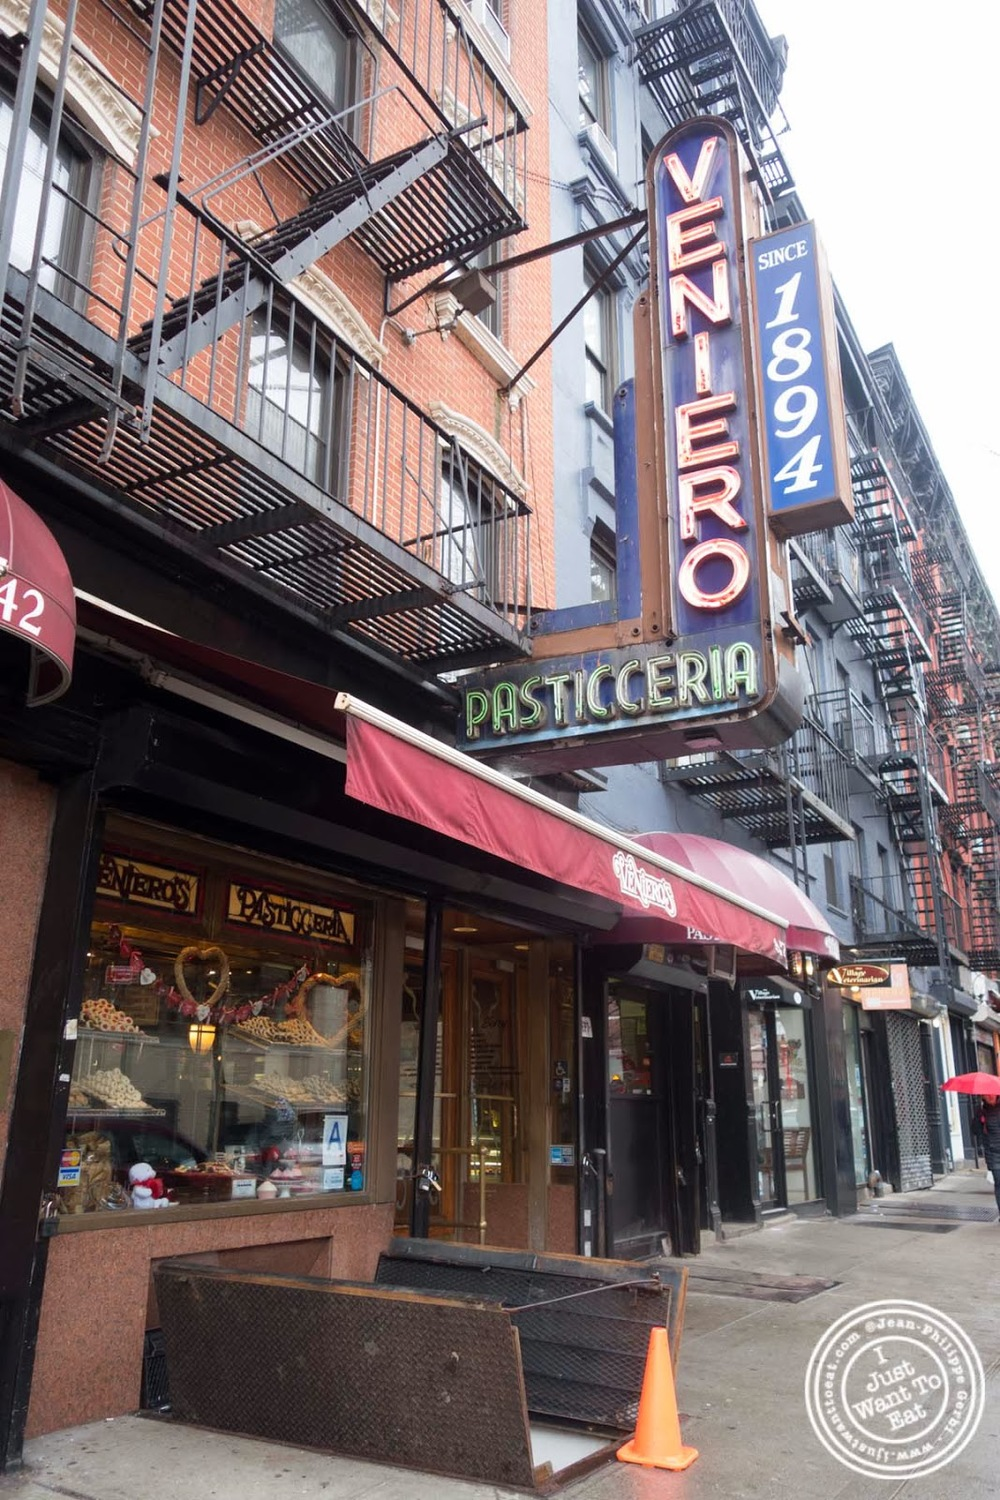 image of Veniero Pasticceria in the East Village, NYC, New York